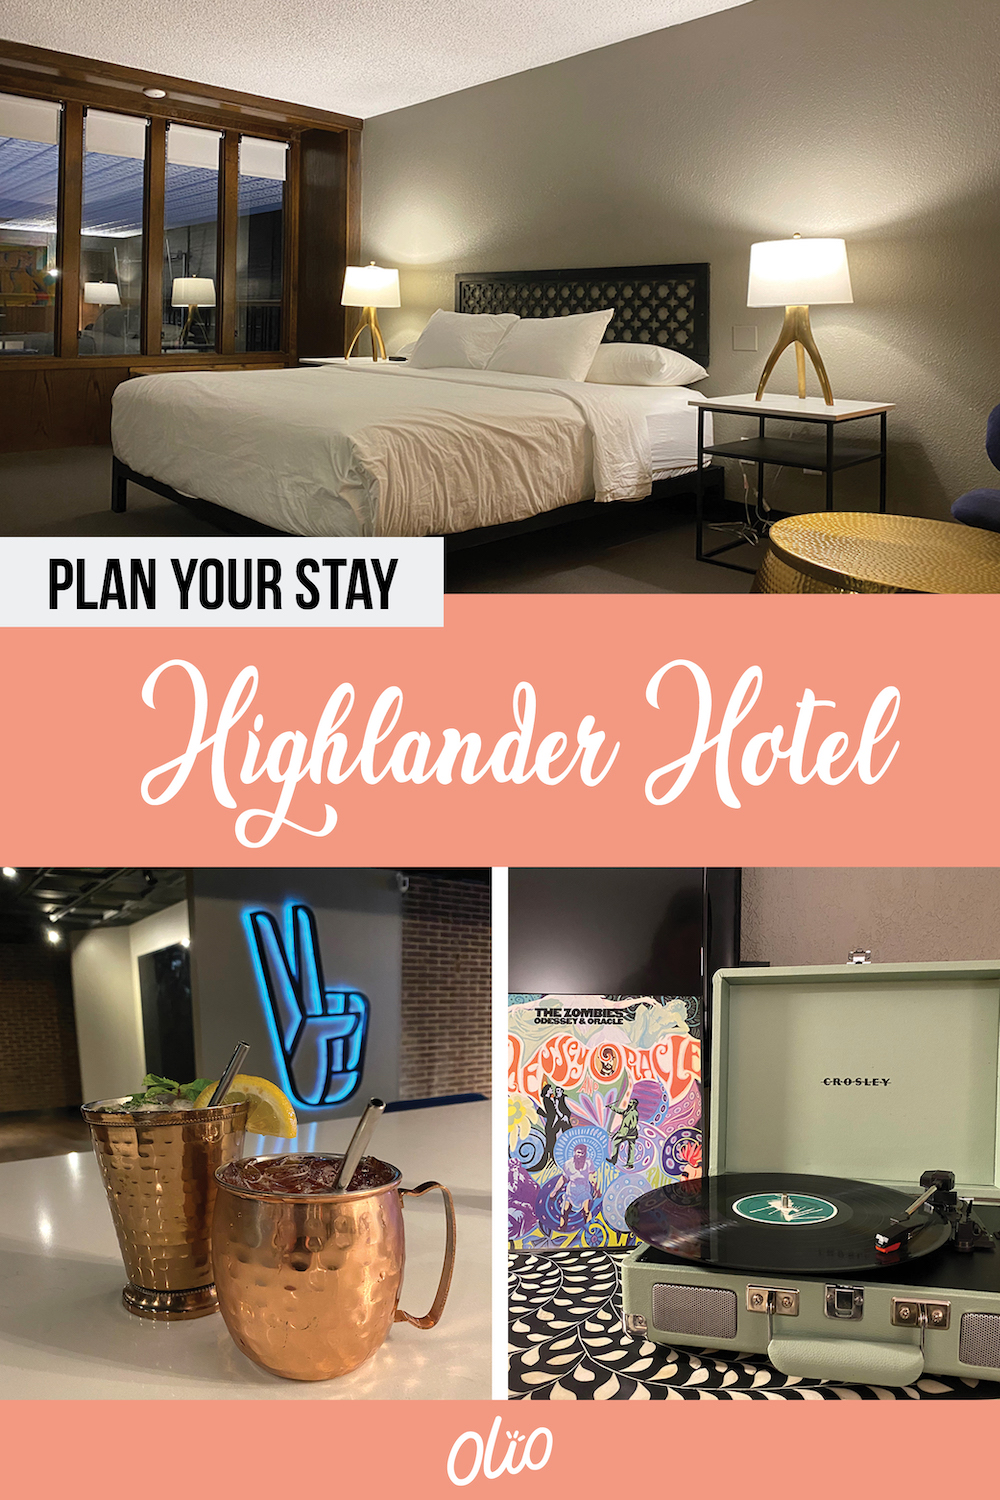 Whether you're planning a staycation or just passing through, The Highlander Hotel in Iowa City is the perfect place to stay! This former Iowa supper club is fully restored with a groovy '70s vibe complete with spacious bar, incredible indoor pool, in-room record players and more. #Iowa #IowaCity #boutiquehotel